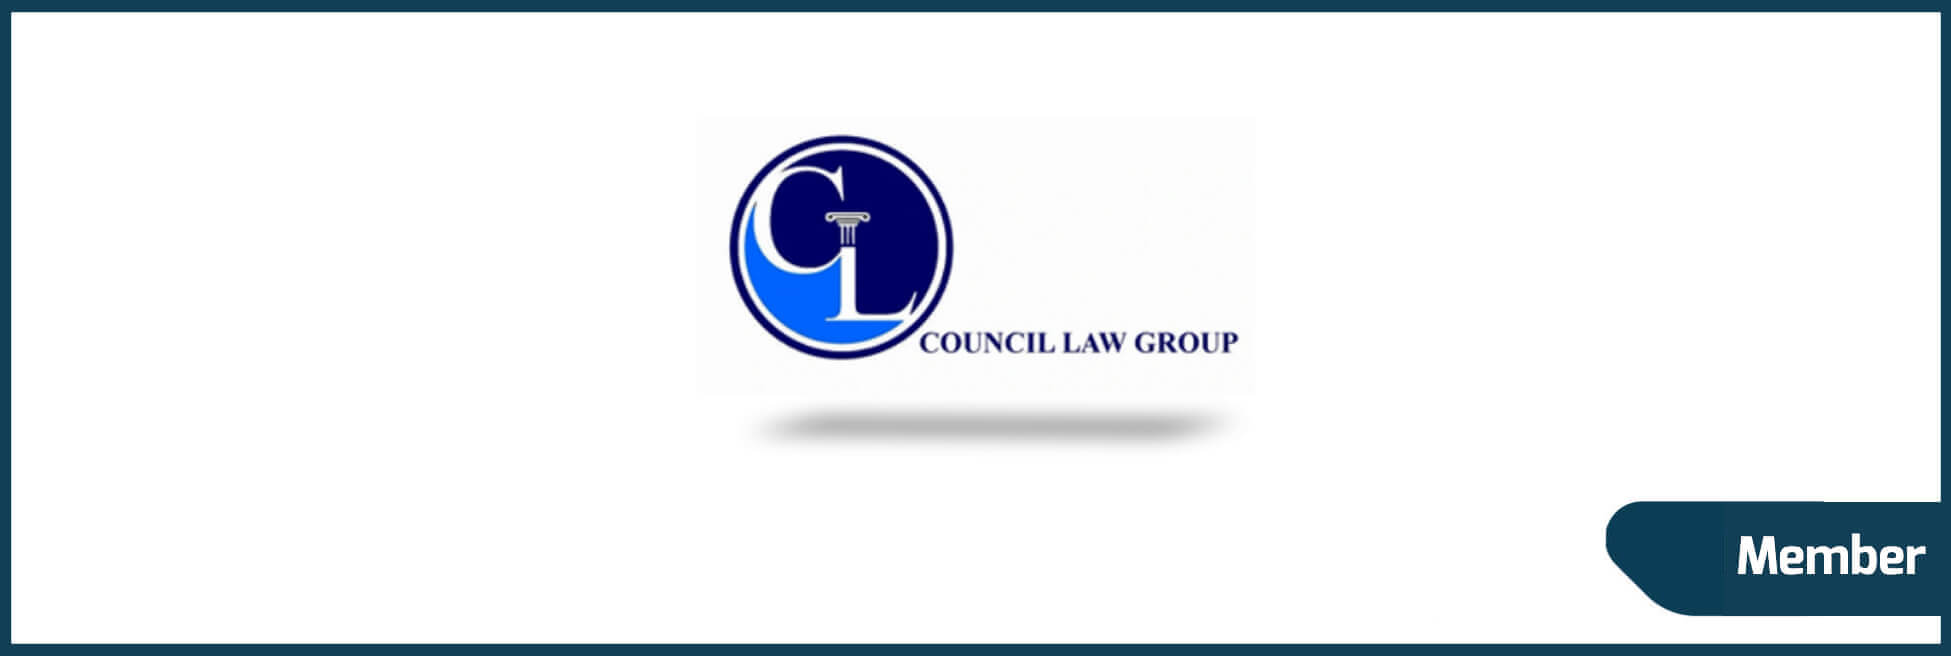 Council Law Group